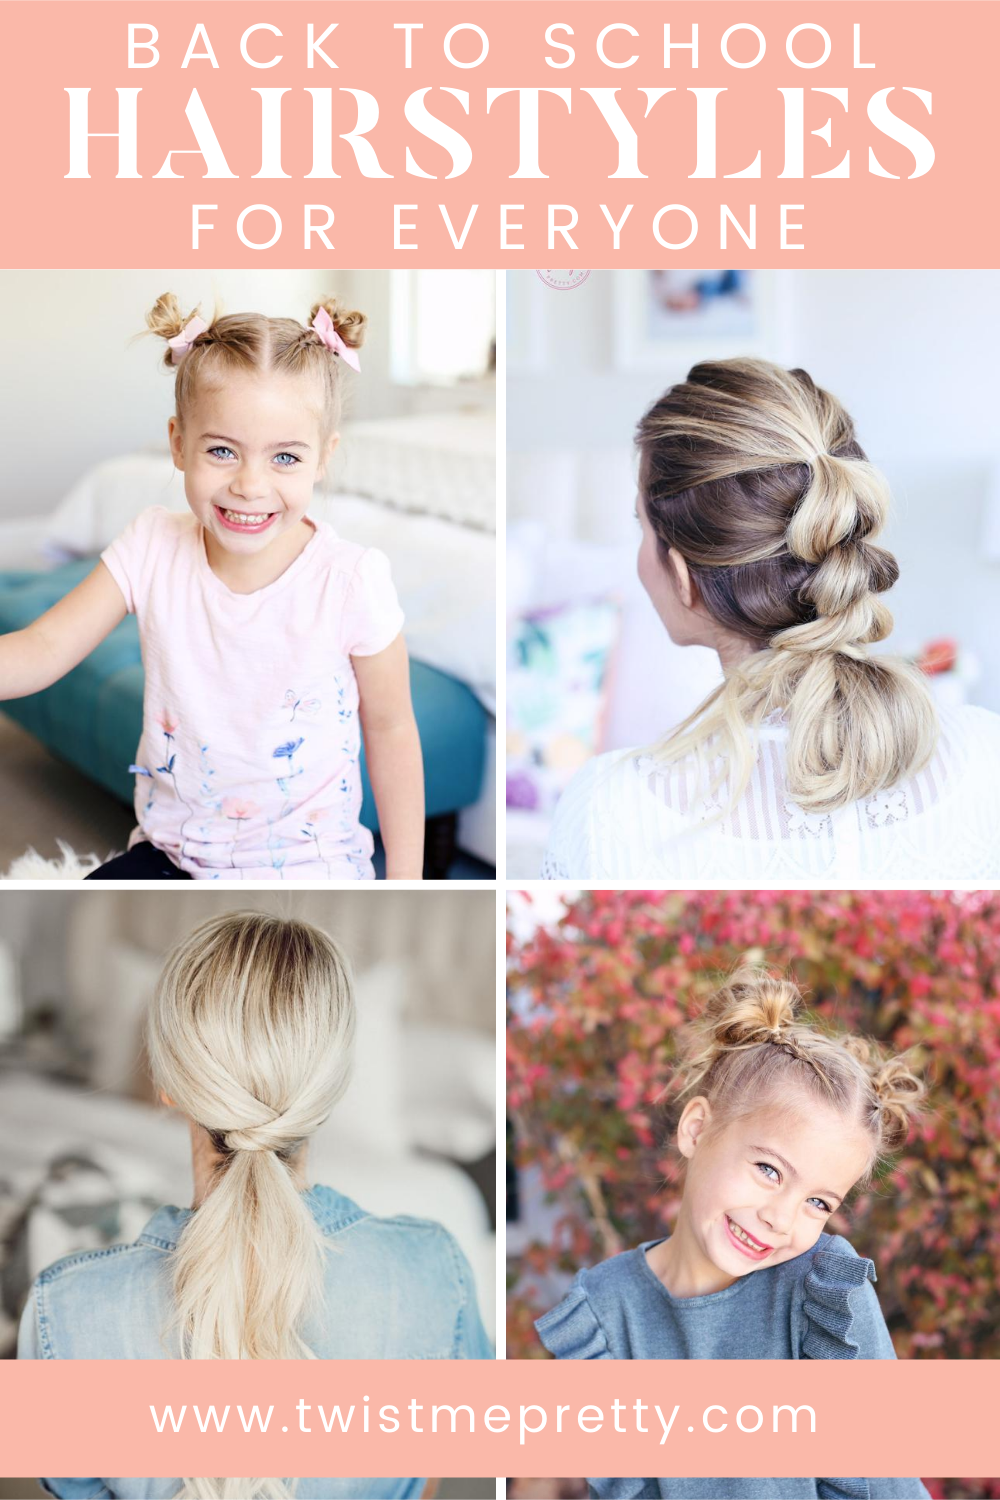 Back to School Hairstyles for Everyone www.twistmepretty.com